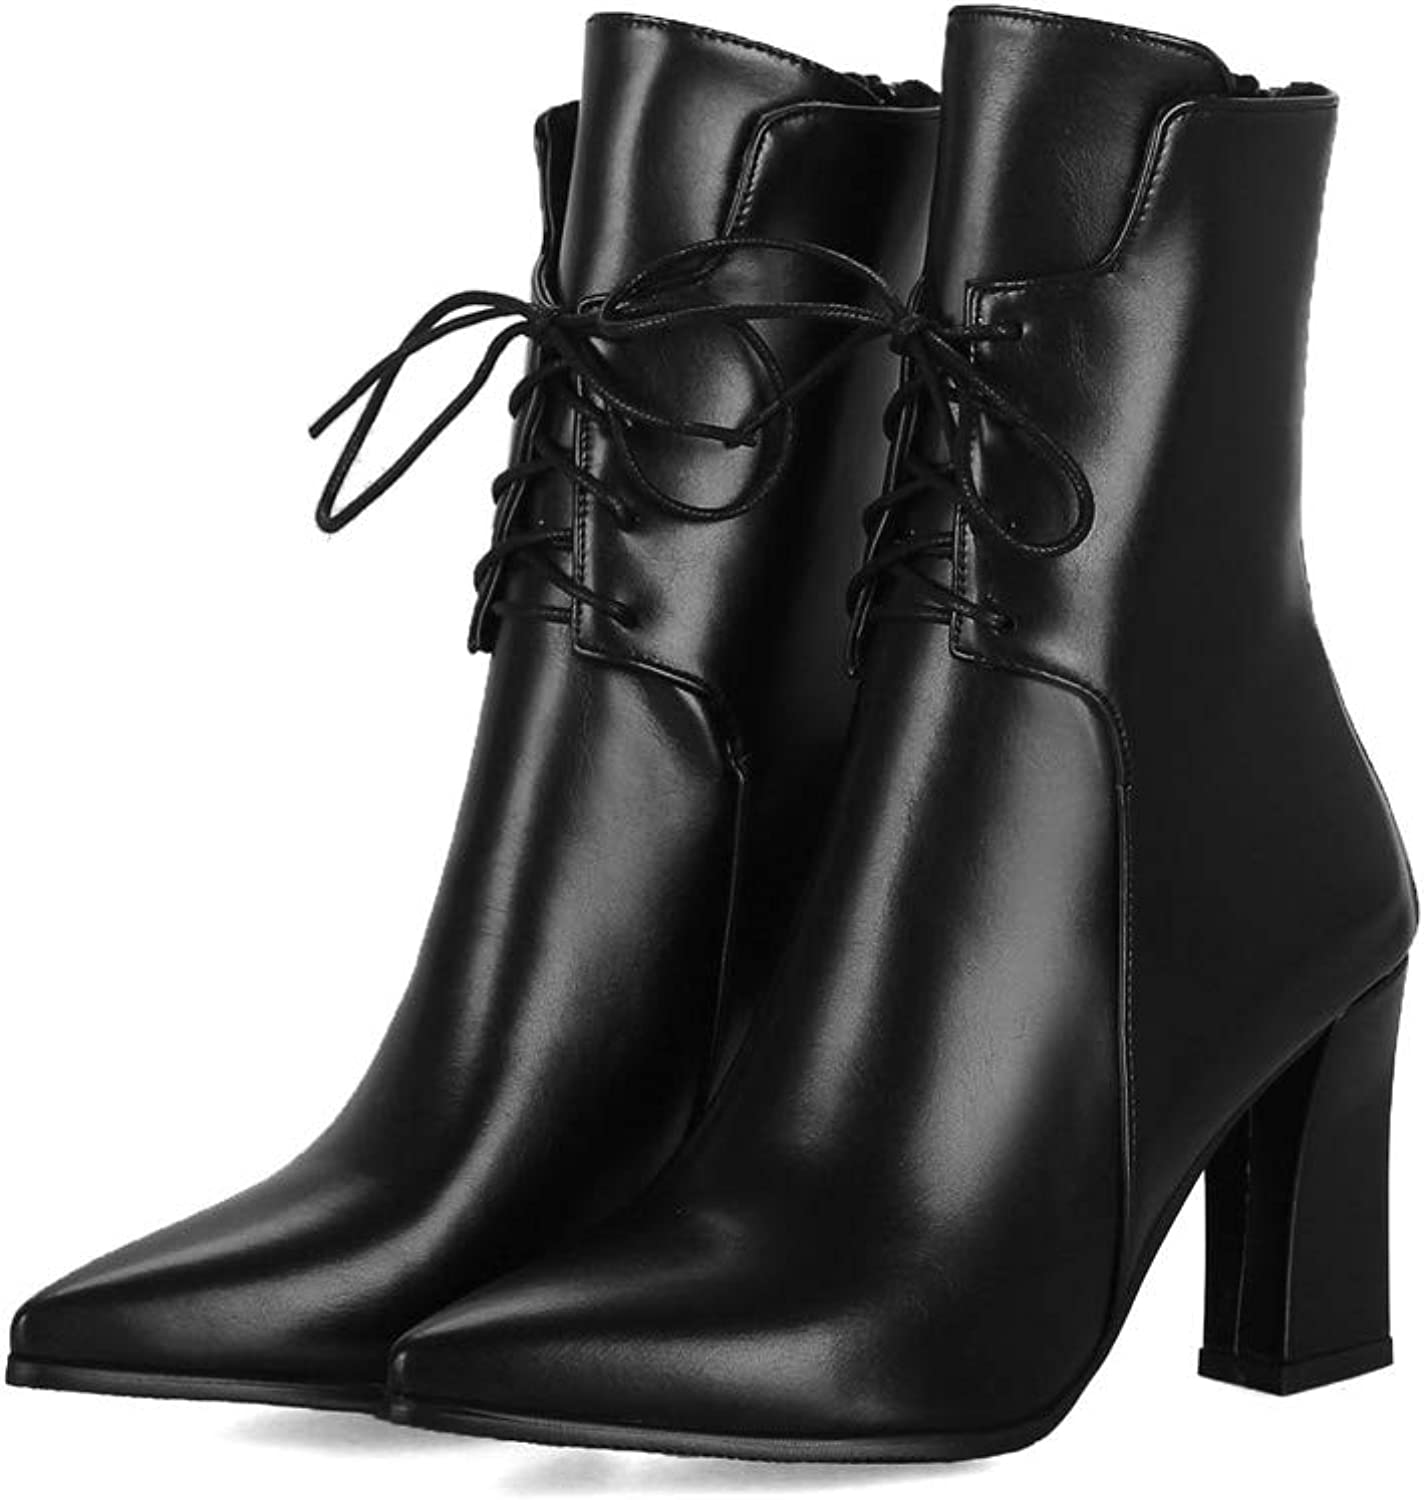 Womens Boots Fall Winter Mid-Calf Boots Ladies High Heel Lace-up Casual shoes